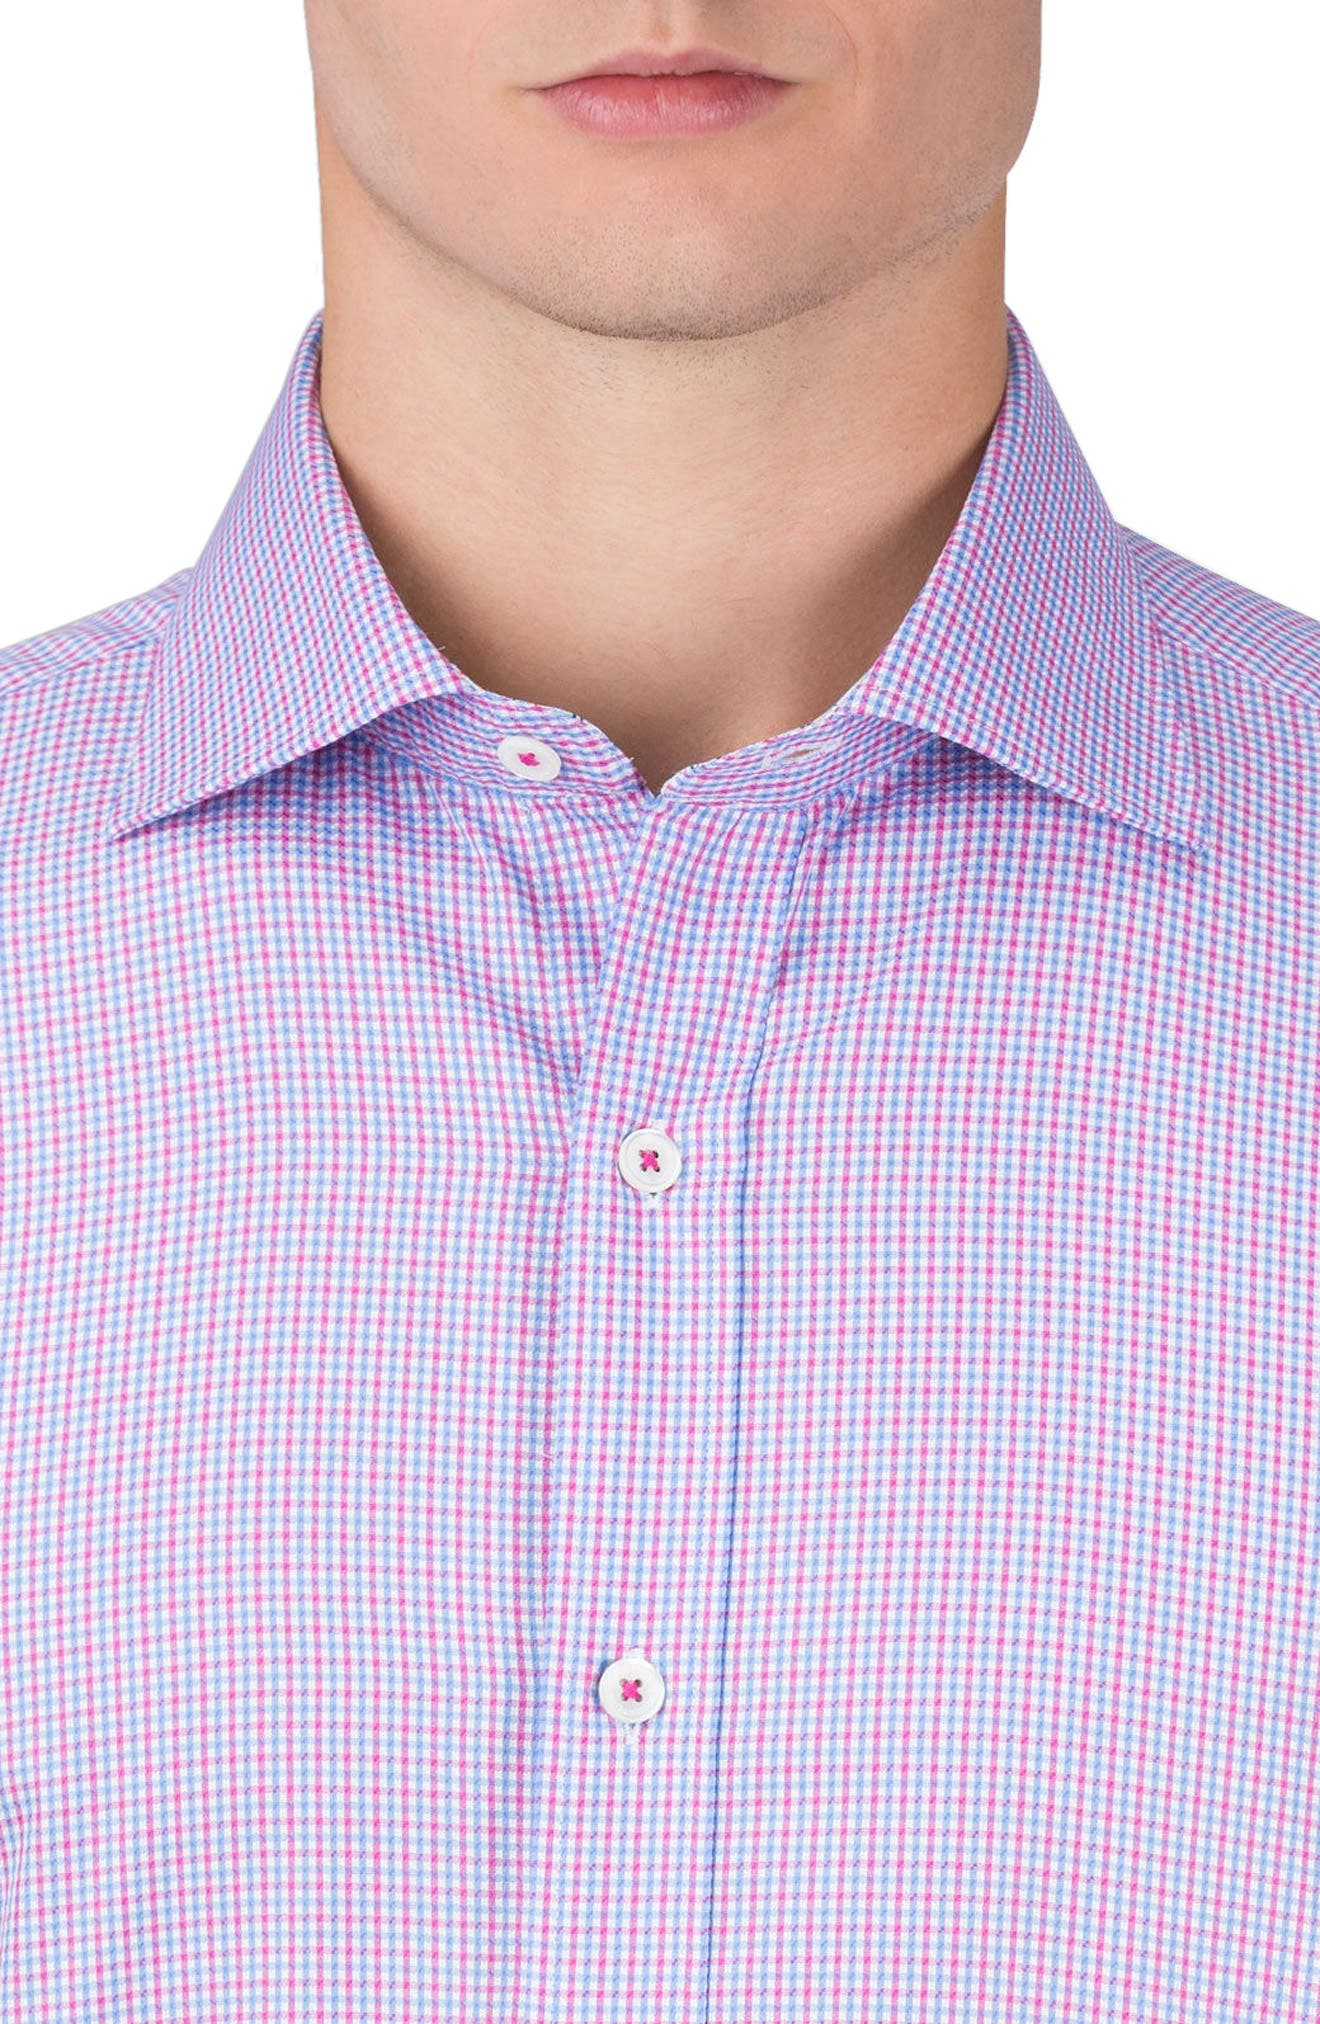 Classic Fit Plaid Sport Shirt,                             Alternate thumbnail 3, color,                             Coral